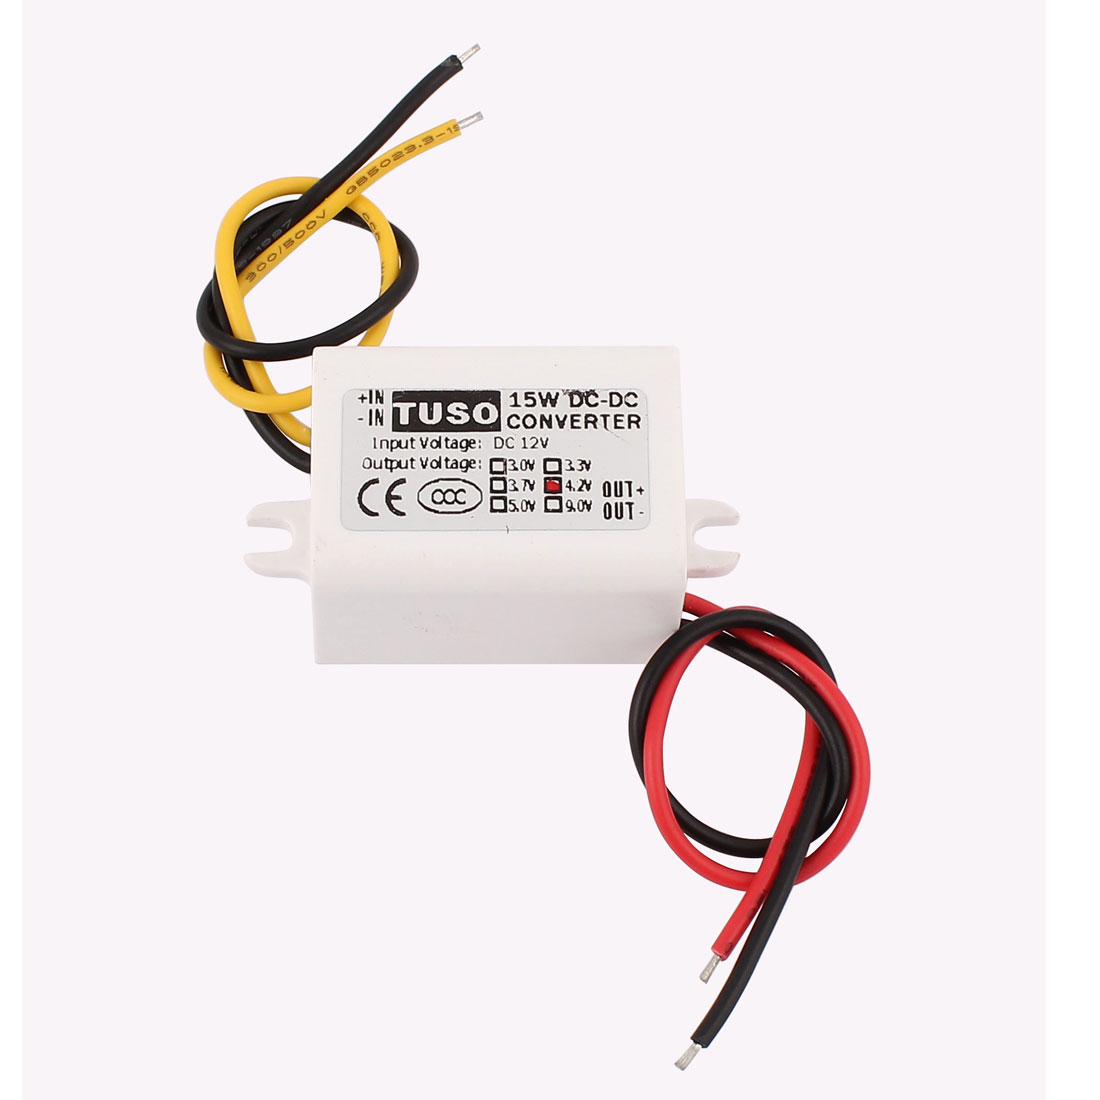 New DC/DC 12V Step Down to 4.2V 15W Waterproof Converter Power Supply Module